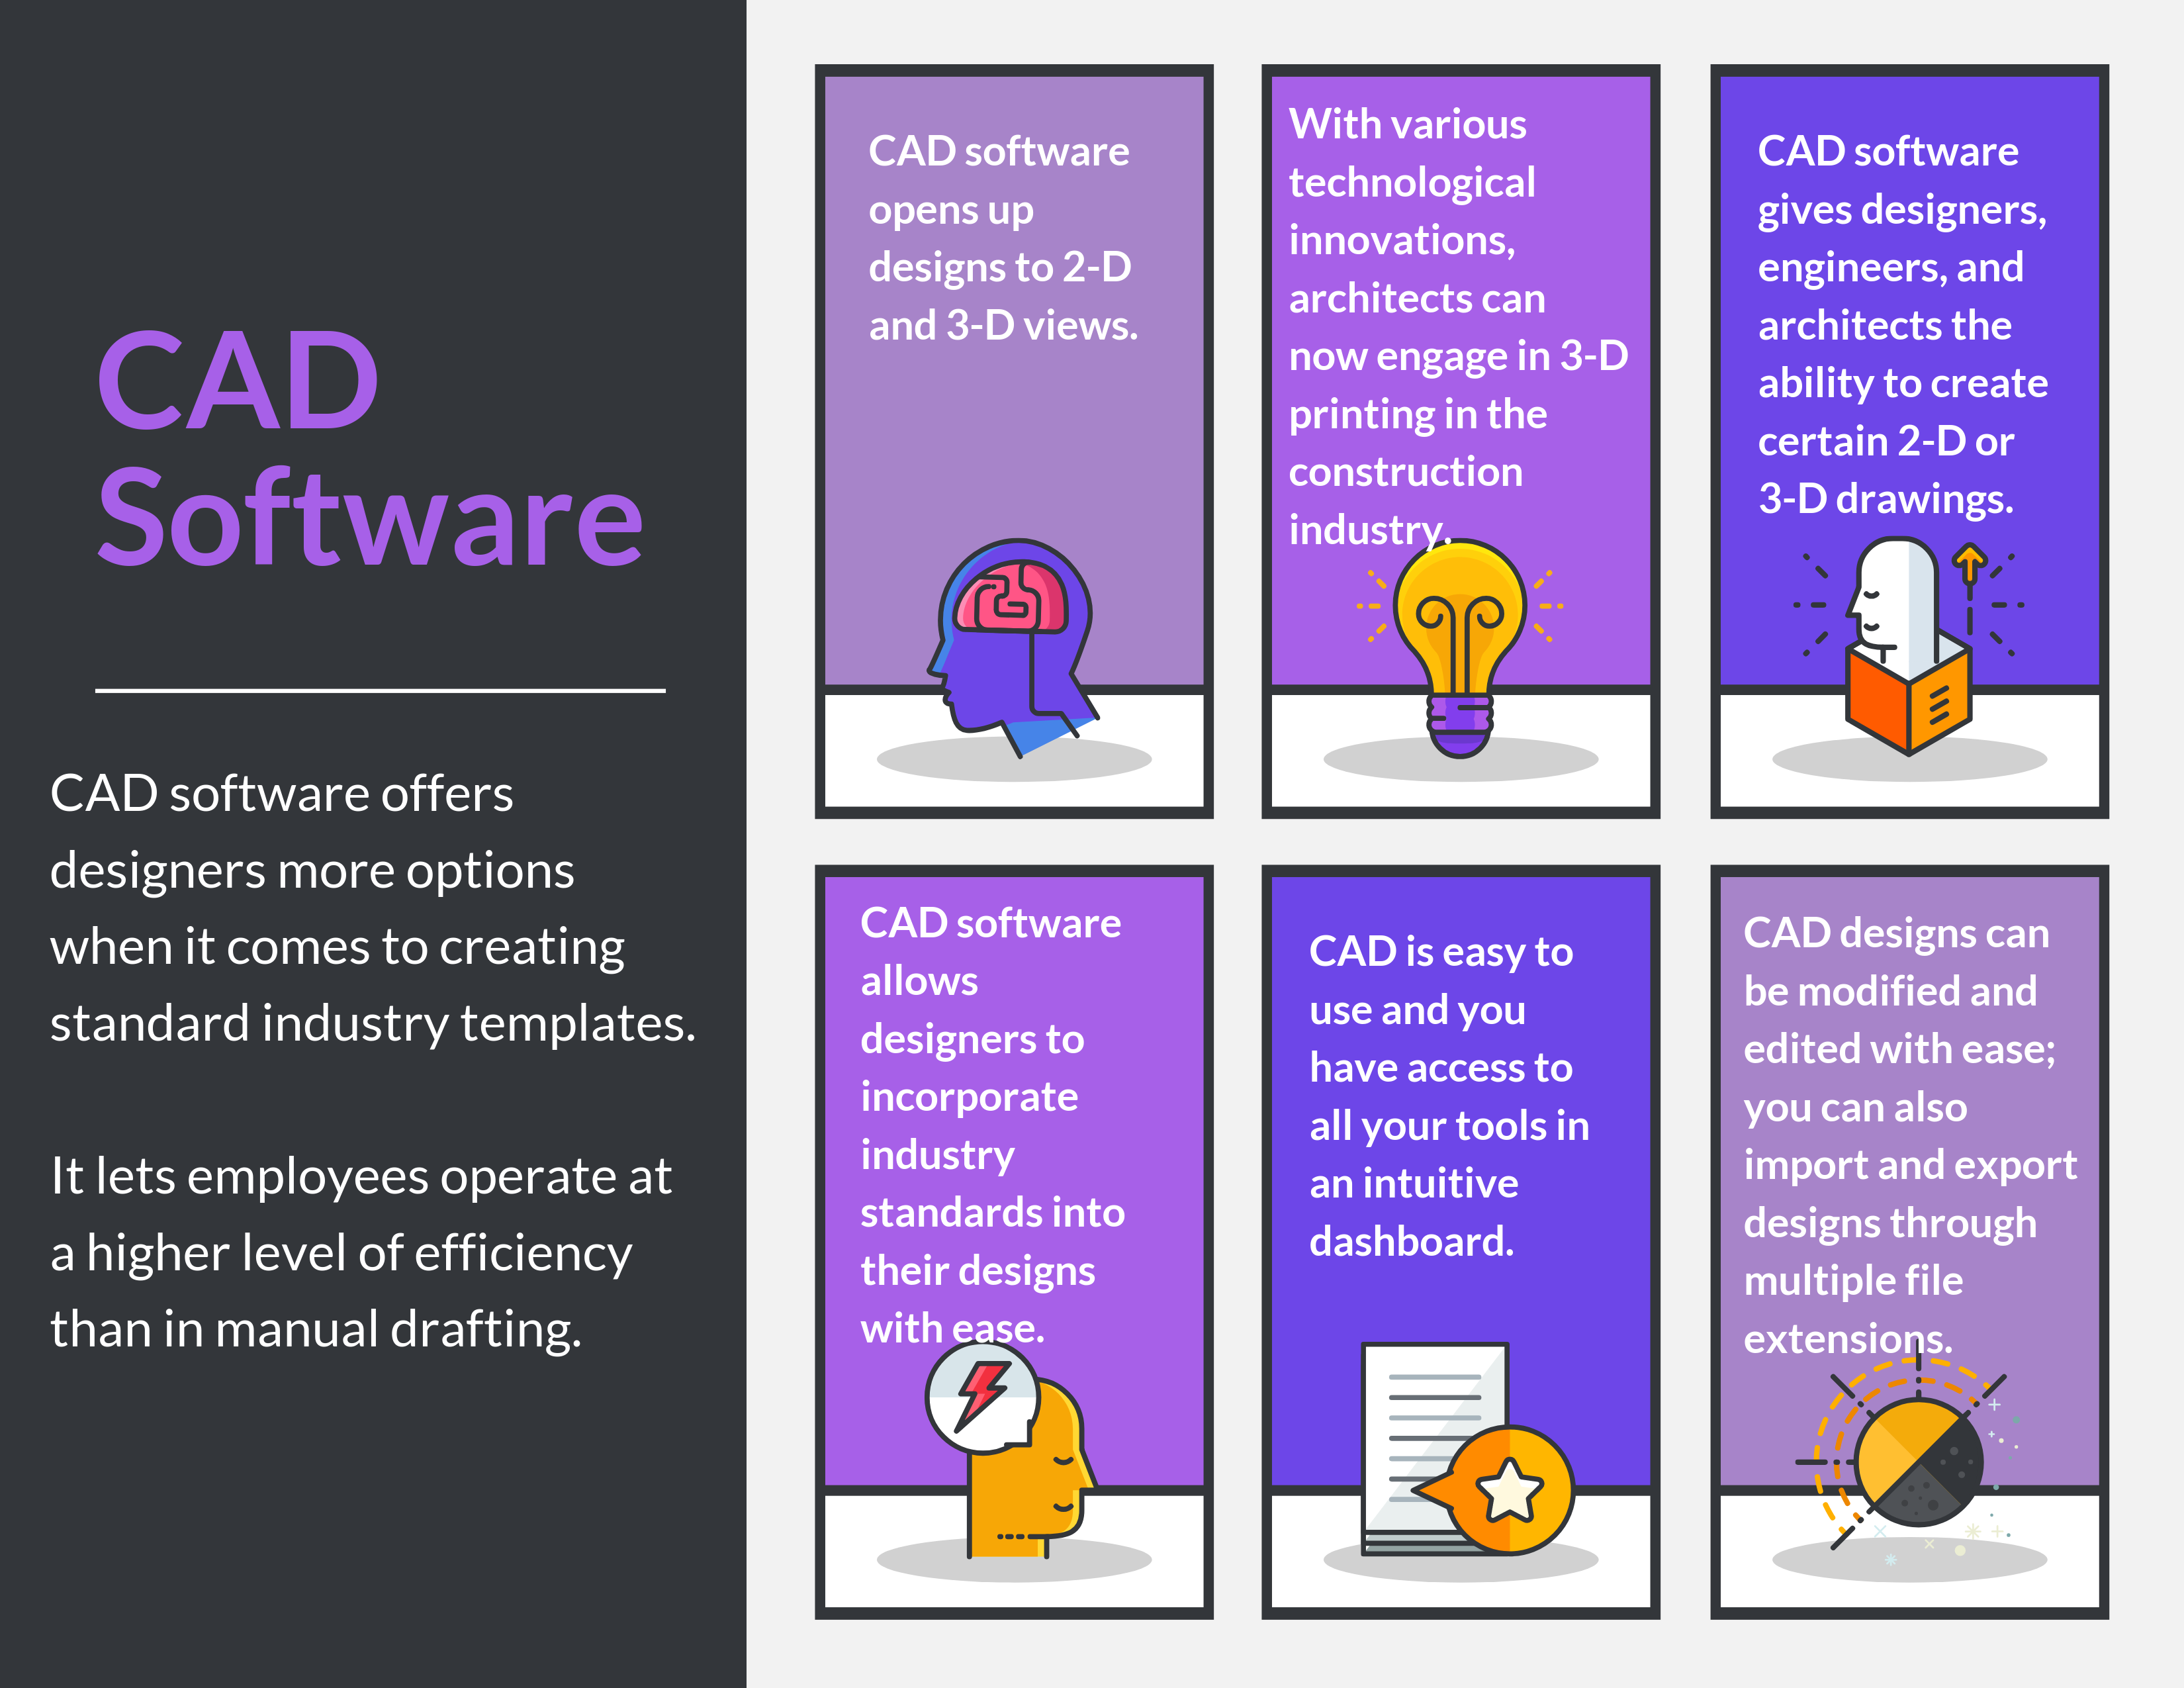 Top 10 Free Cad Software In 2020 Reviews Features Pricing Comparison Pat Research B2b Reviews Buying Guides Best Practices